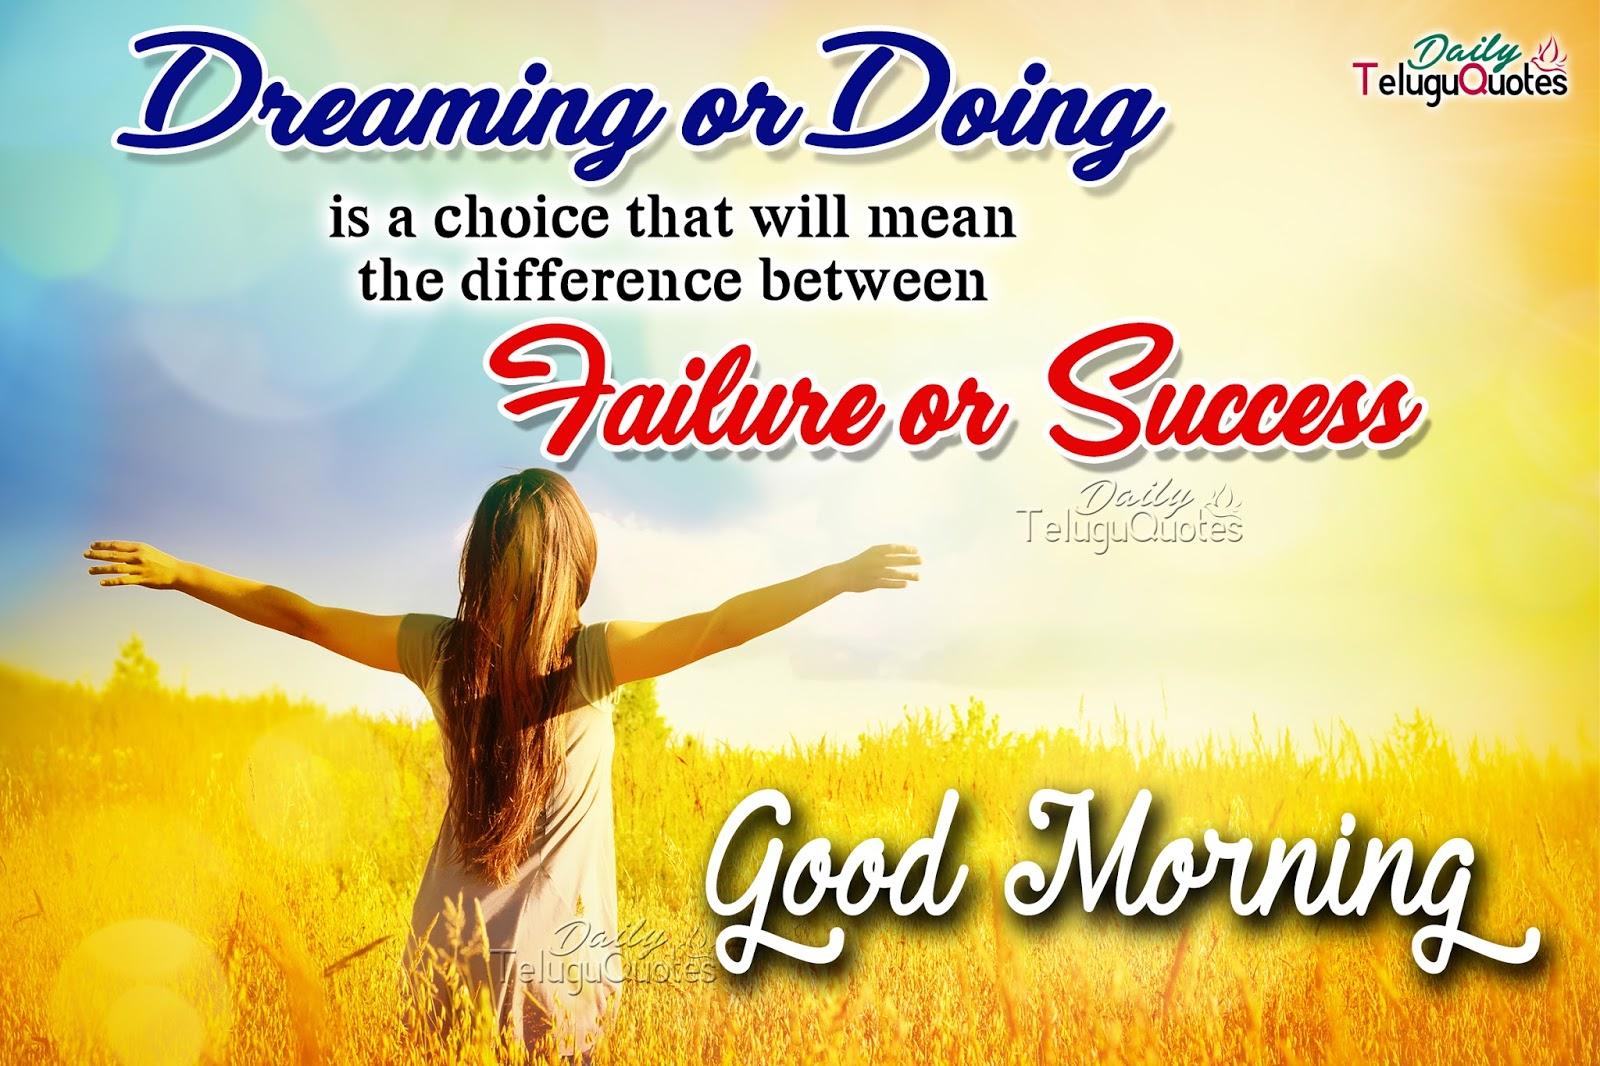 Best good morning wishes quotes and greetings about failure and motivational good morning quotes greetings sms messages about kristyandbryce Images